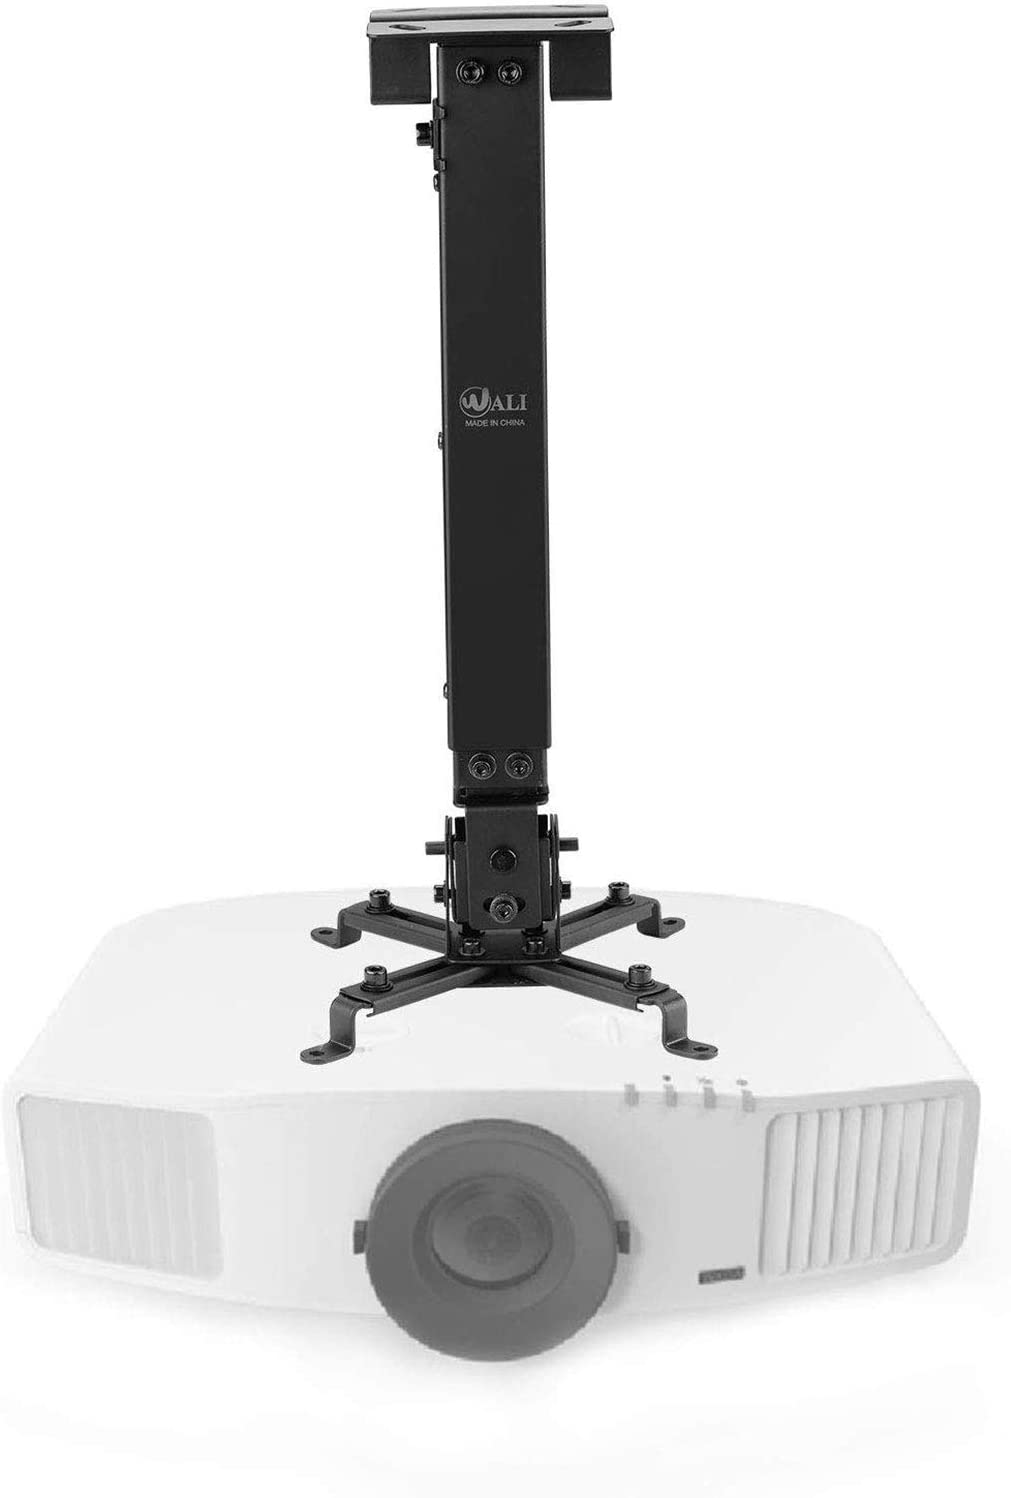 Universal Projector Ceiling Mount Multiple Adjustment Bracket with 25.6 inches Extension Pole, Hold up to 44 lbs (PM-001-BLK), Black